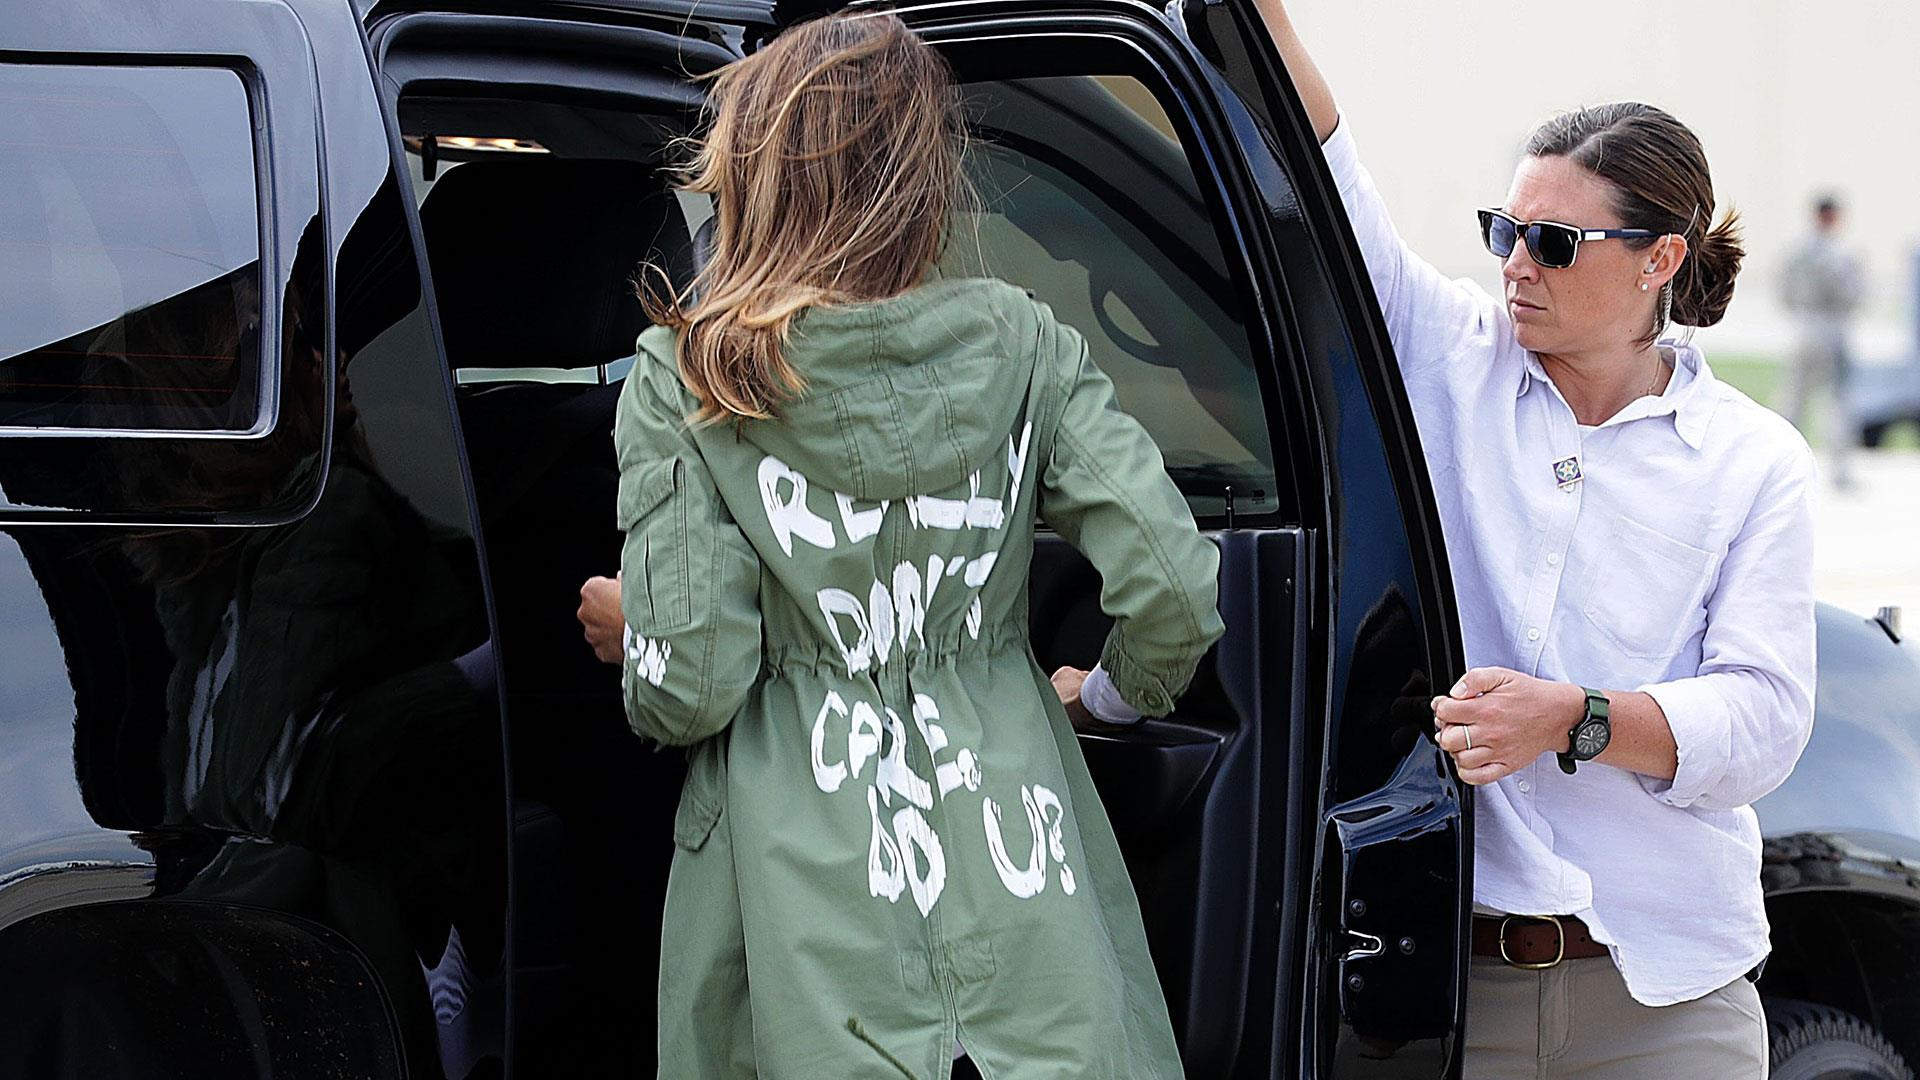 2b3d5bc634a3 First lady Melania Trump wears controversial jacket to visit migrant kids  at Texas border